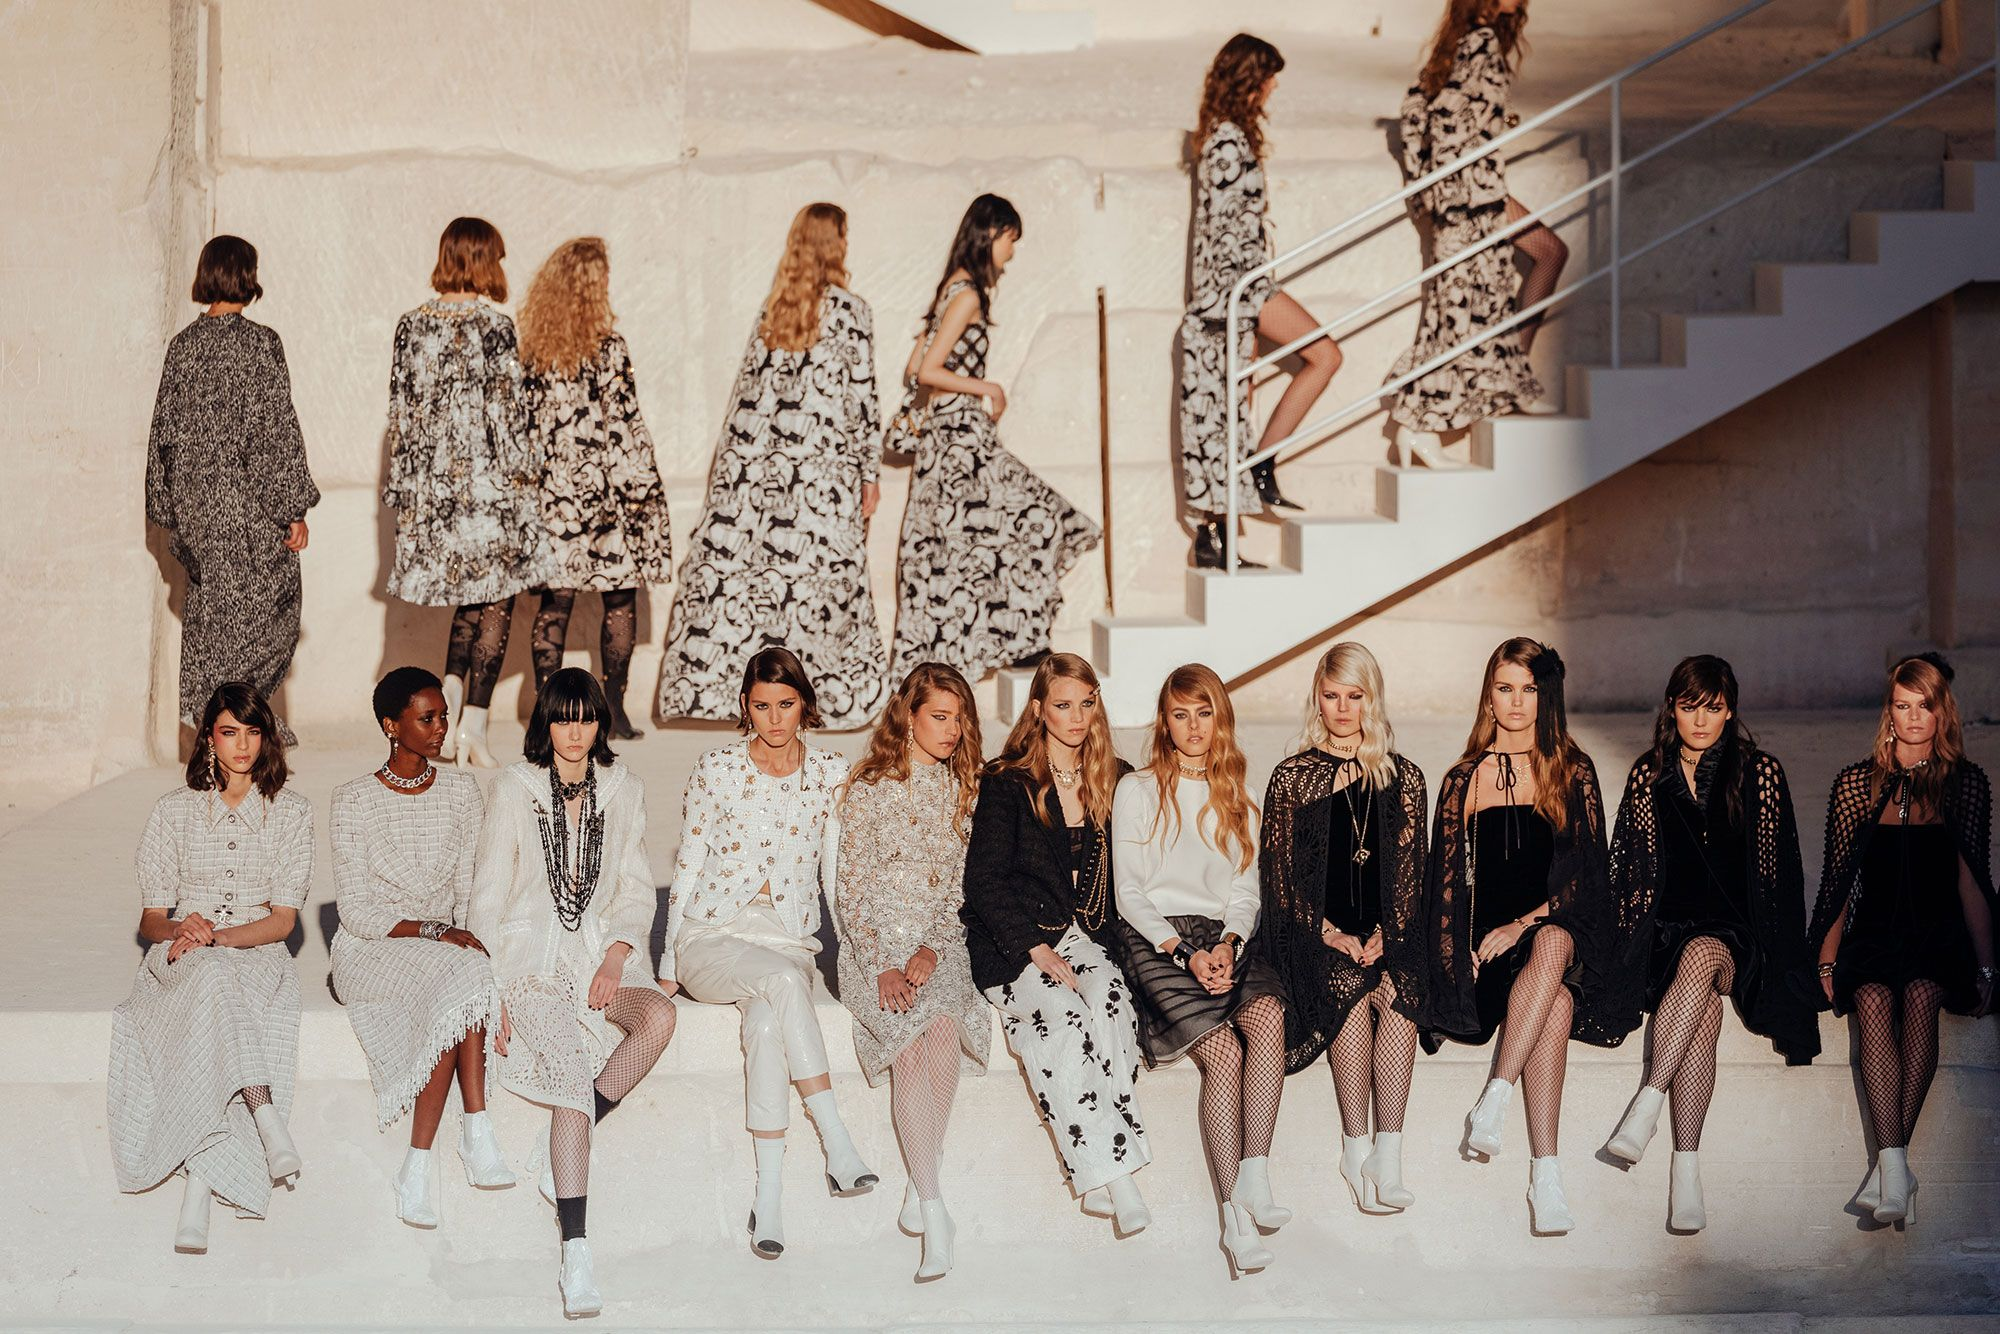 Chanel Cruise 2022: 10 Rock-Inspired Looks for the Modern Punk Princess